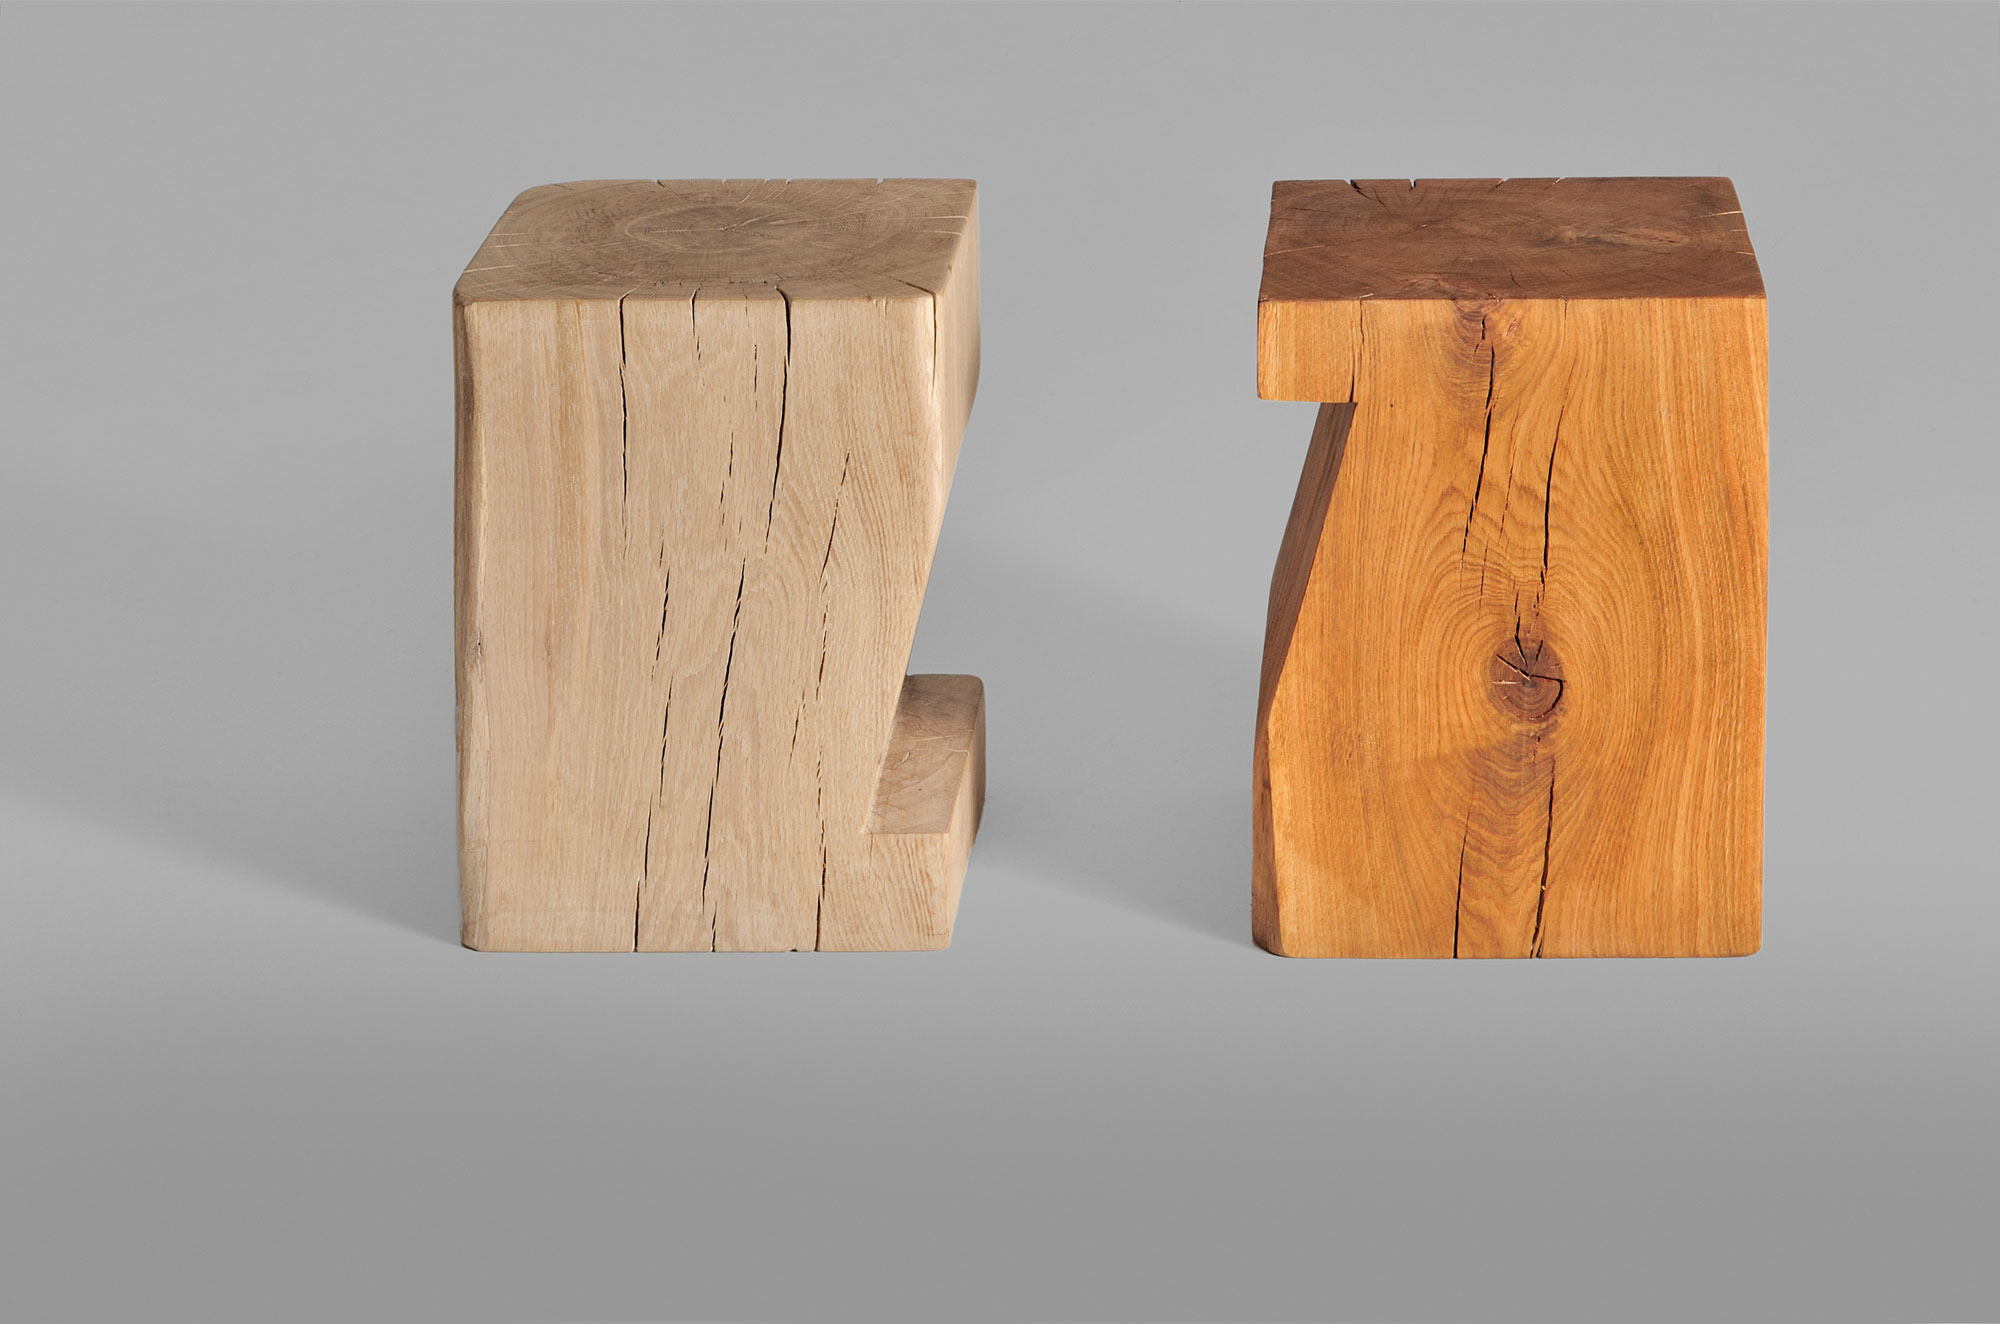 Tree Stump Coffee Table PFEIFE 3665 custom made in solid wood by vitamin design